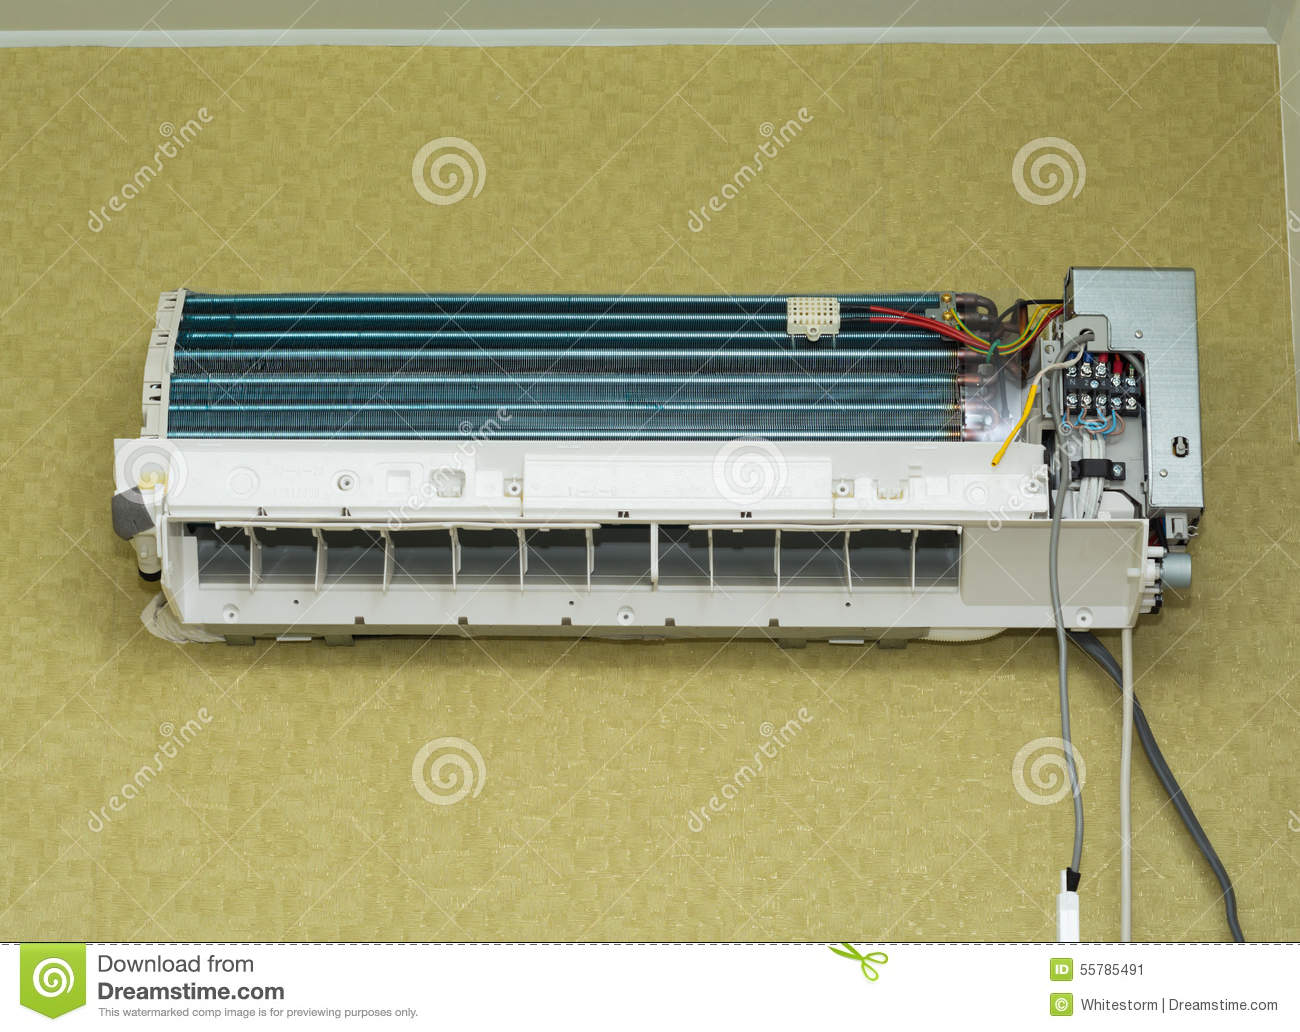 Air conditioner install on wall for condo or meeting room. #888043